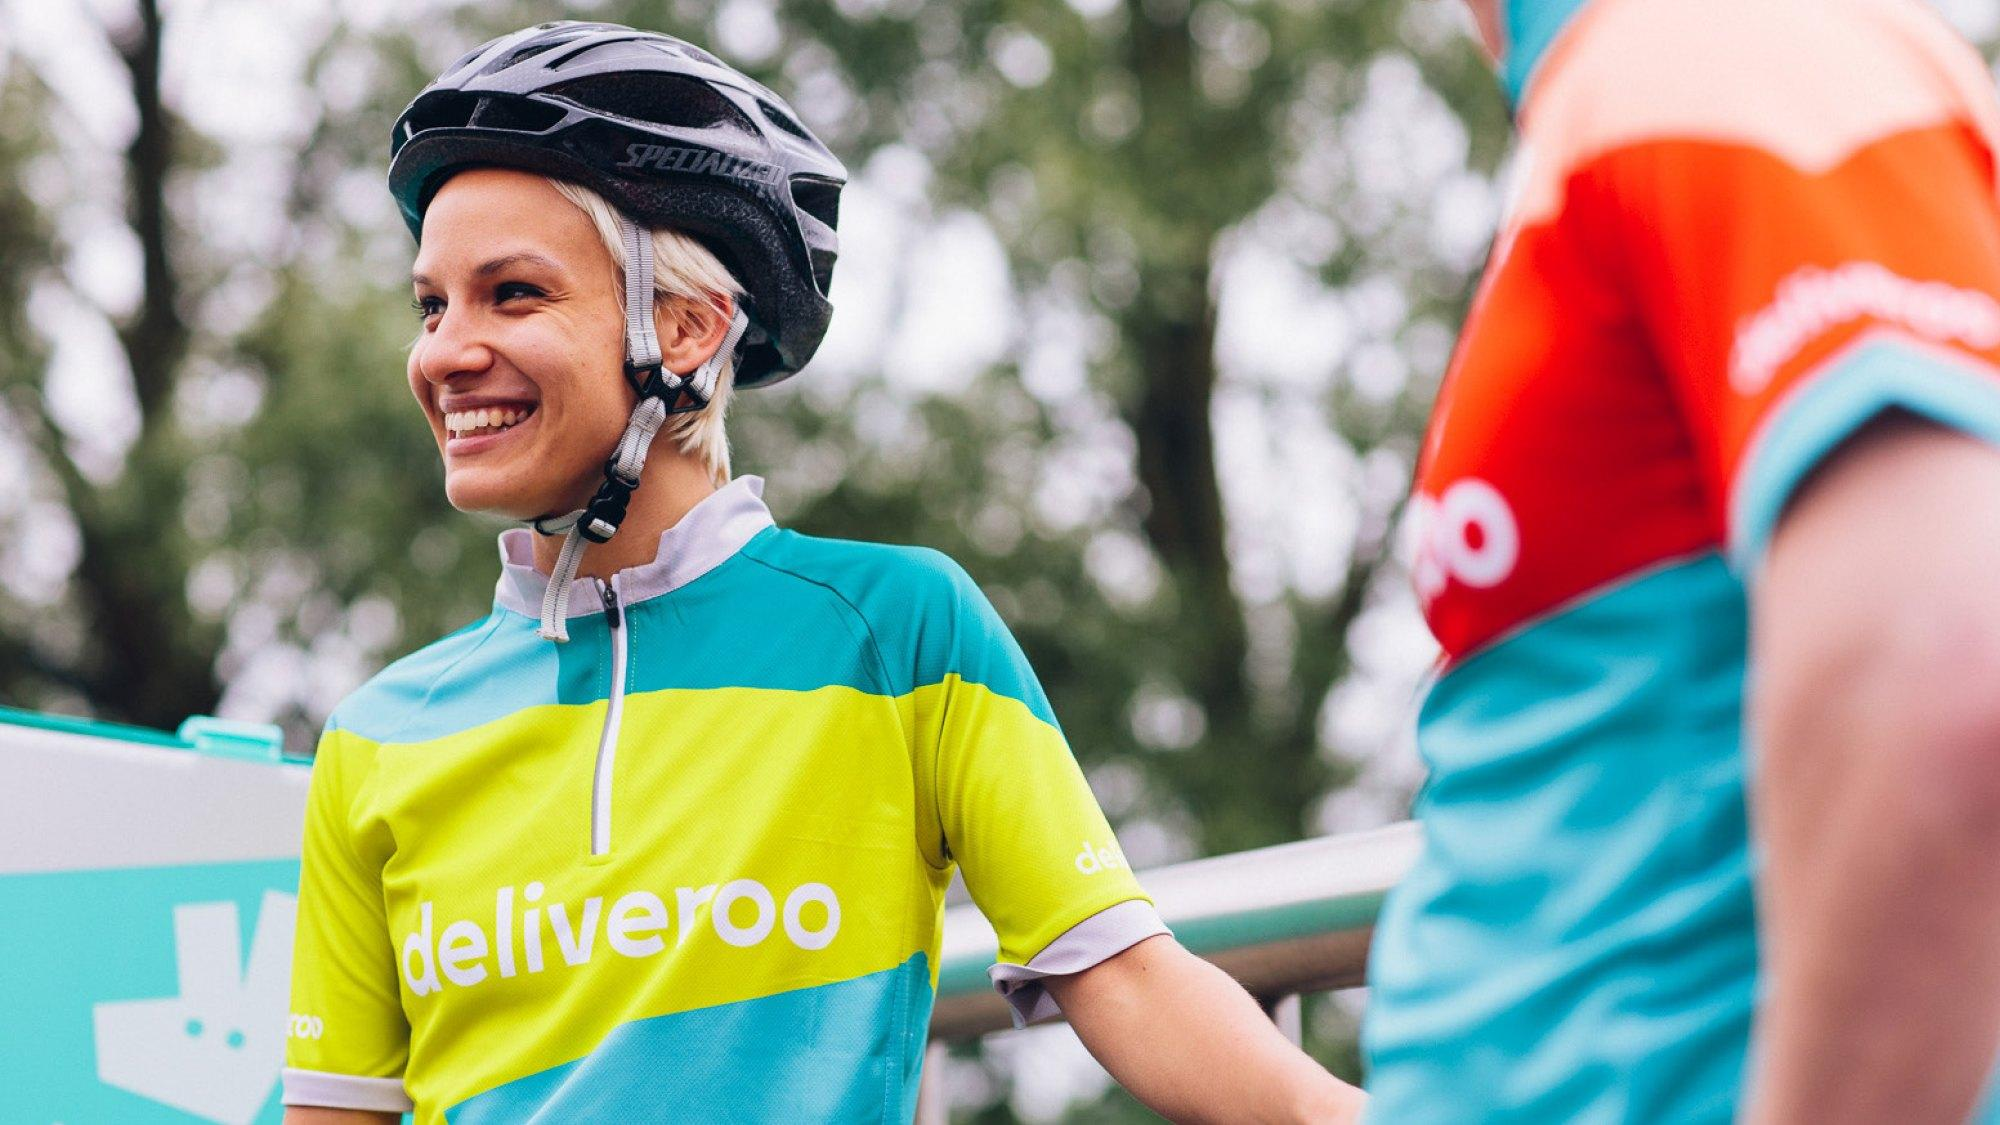 Designers followed Deliveroo drivers for an evening